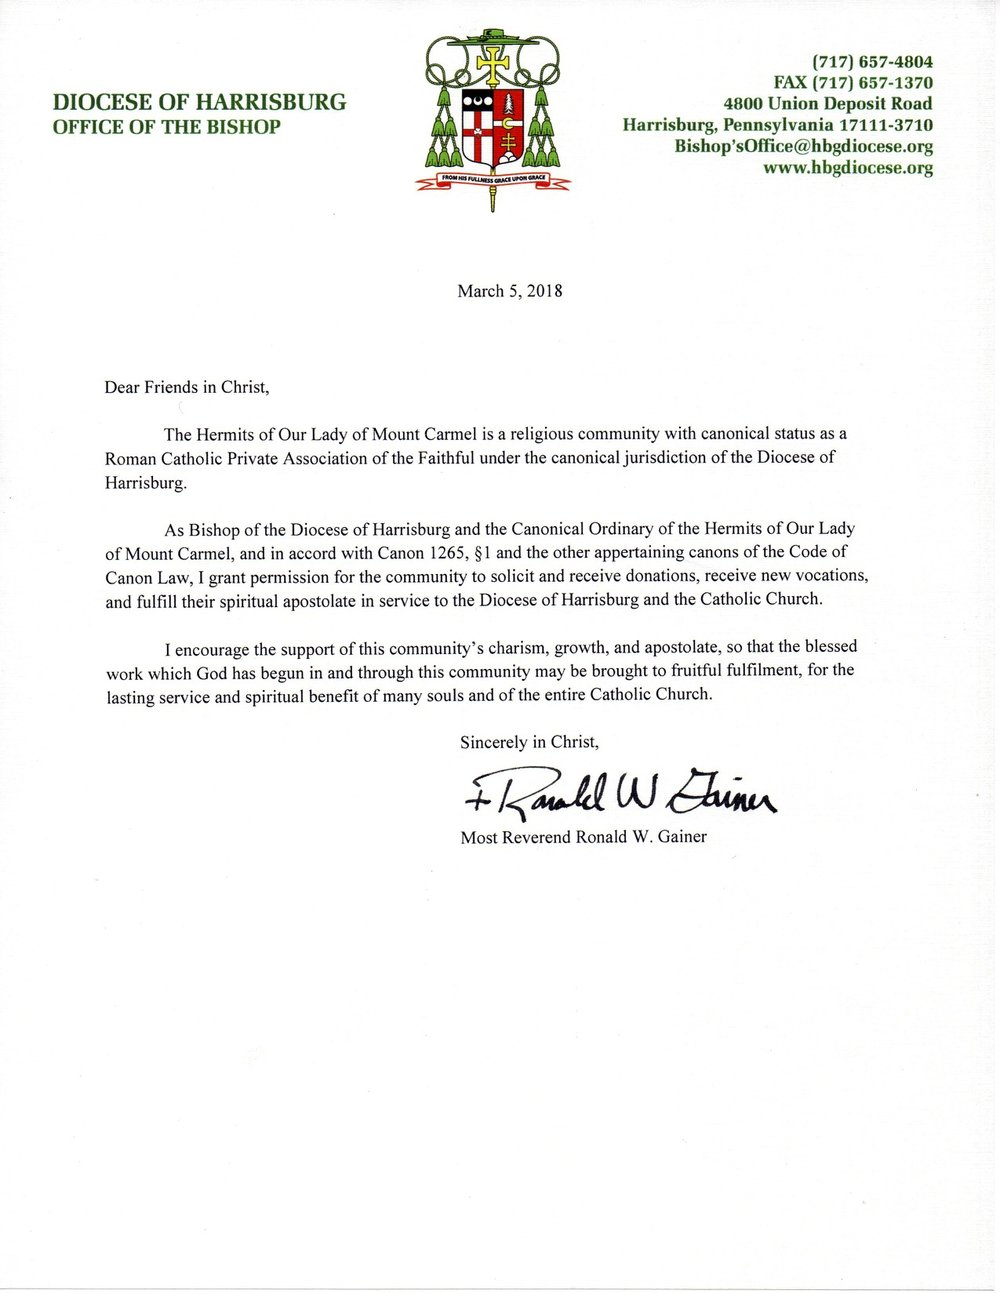 Bishop Ronald Gainer Letter of Support.jpg